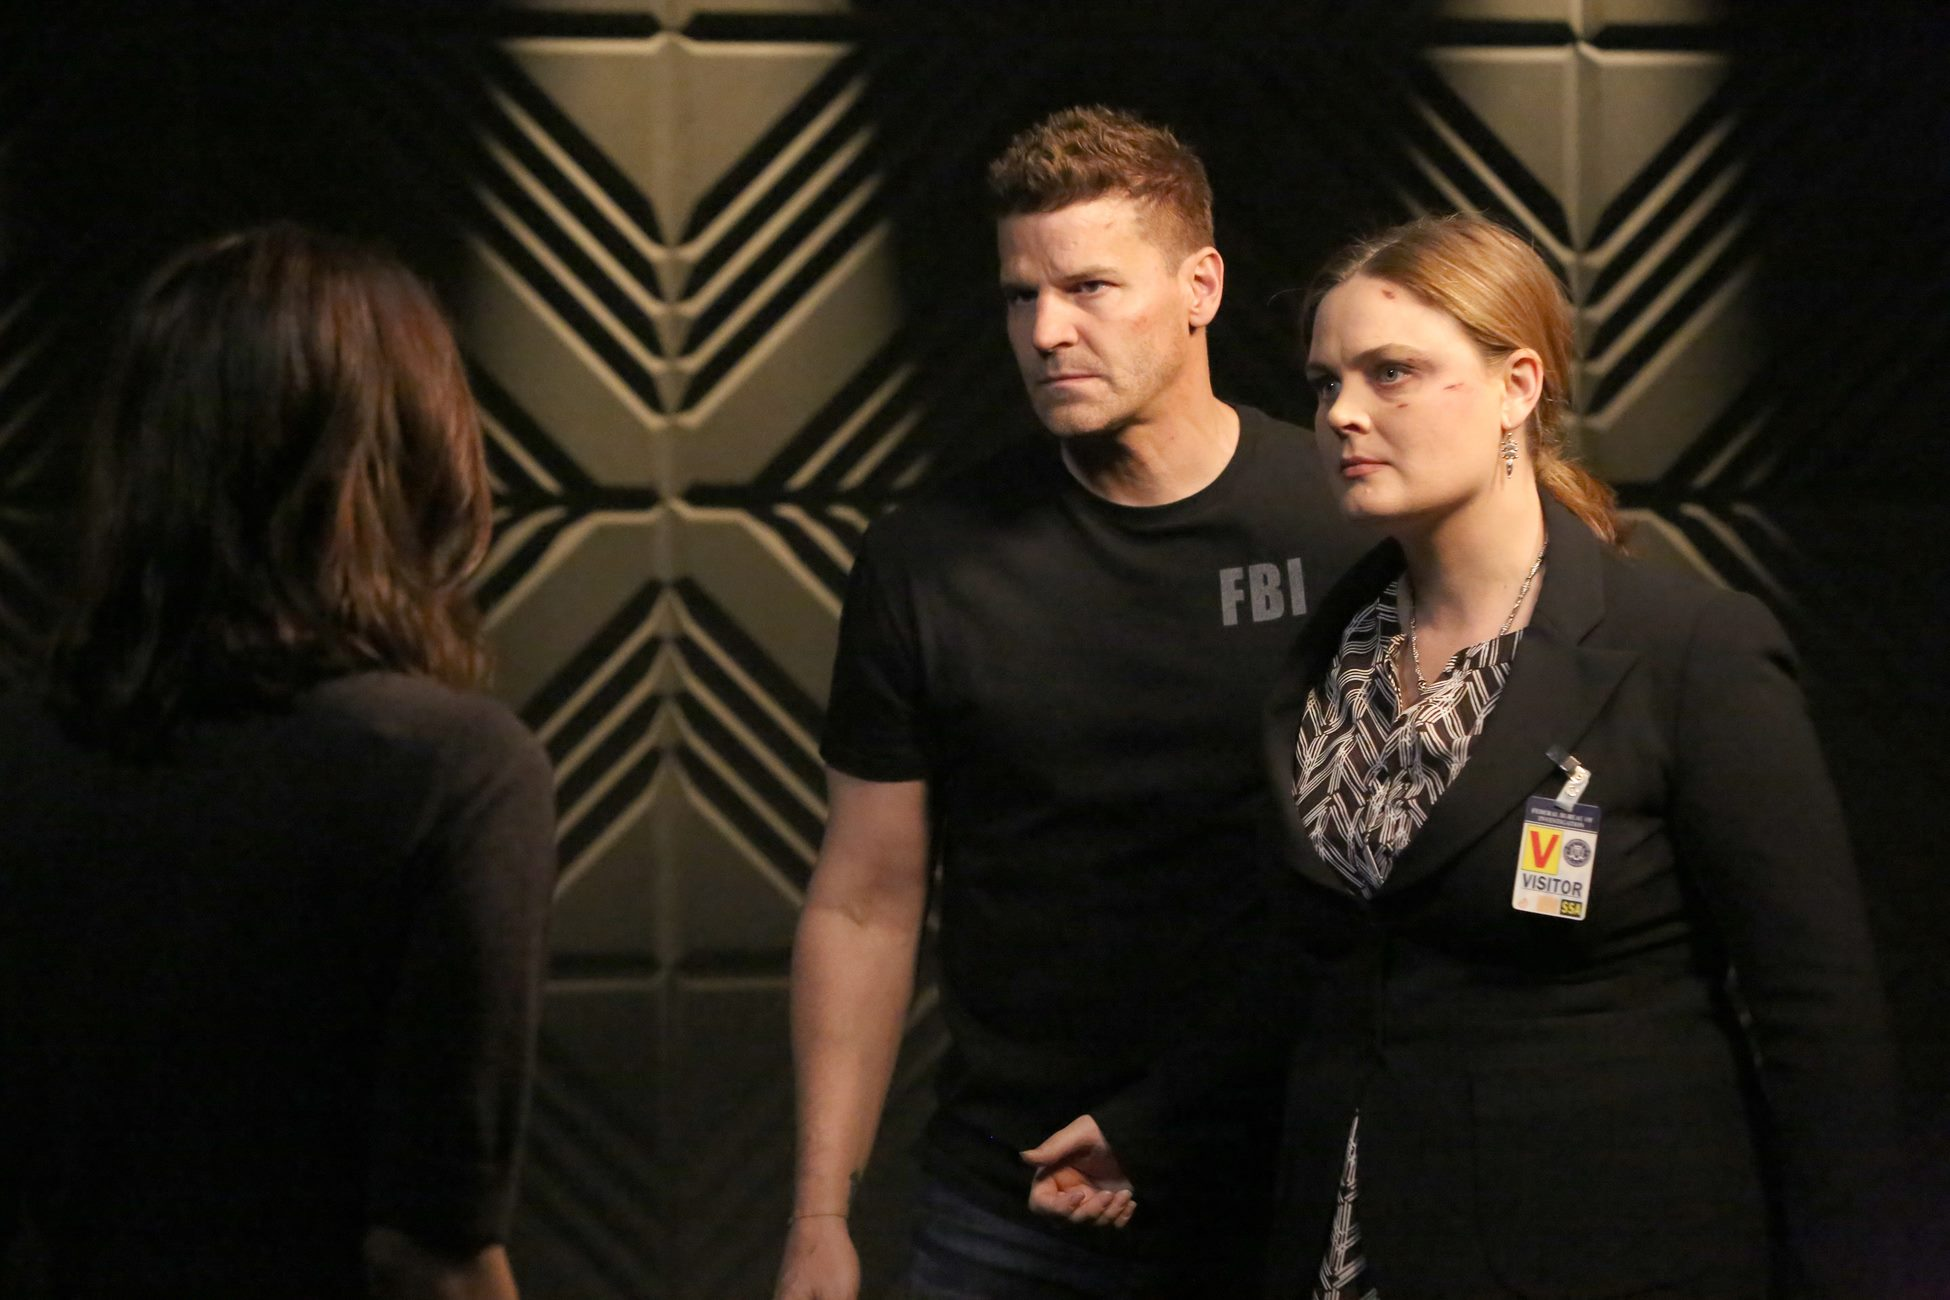 Bones 12x12 The Final Chapter: The End in the End